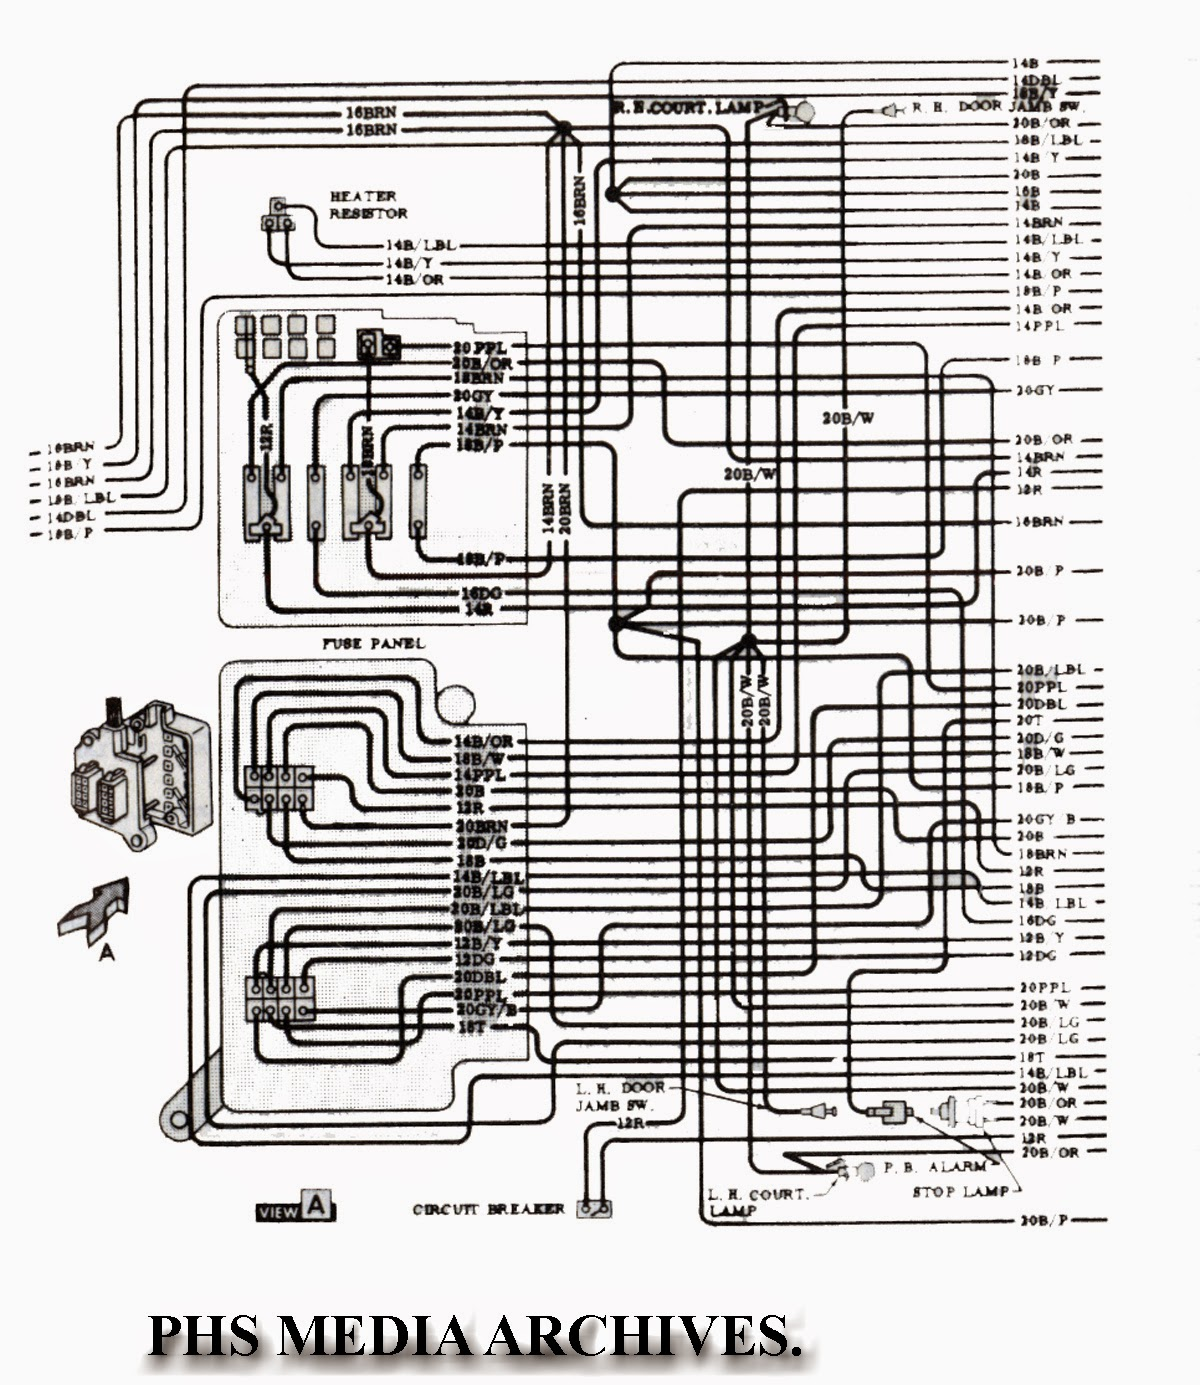 vette%2Bfuse%2Bblock tech series 1965 chevrolet corvette wiring diagrams, engine, fuse 65 corvette wiring diagram at soozxer.org